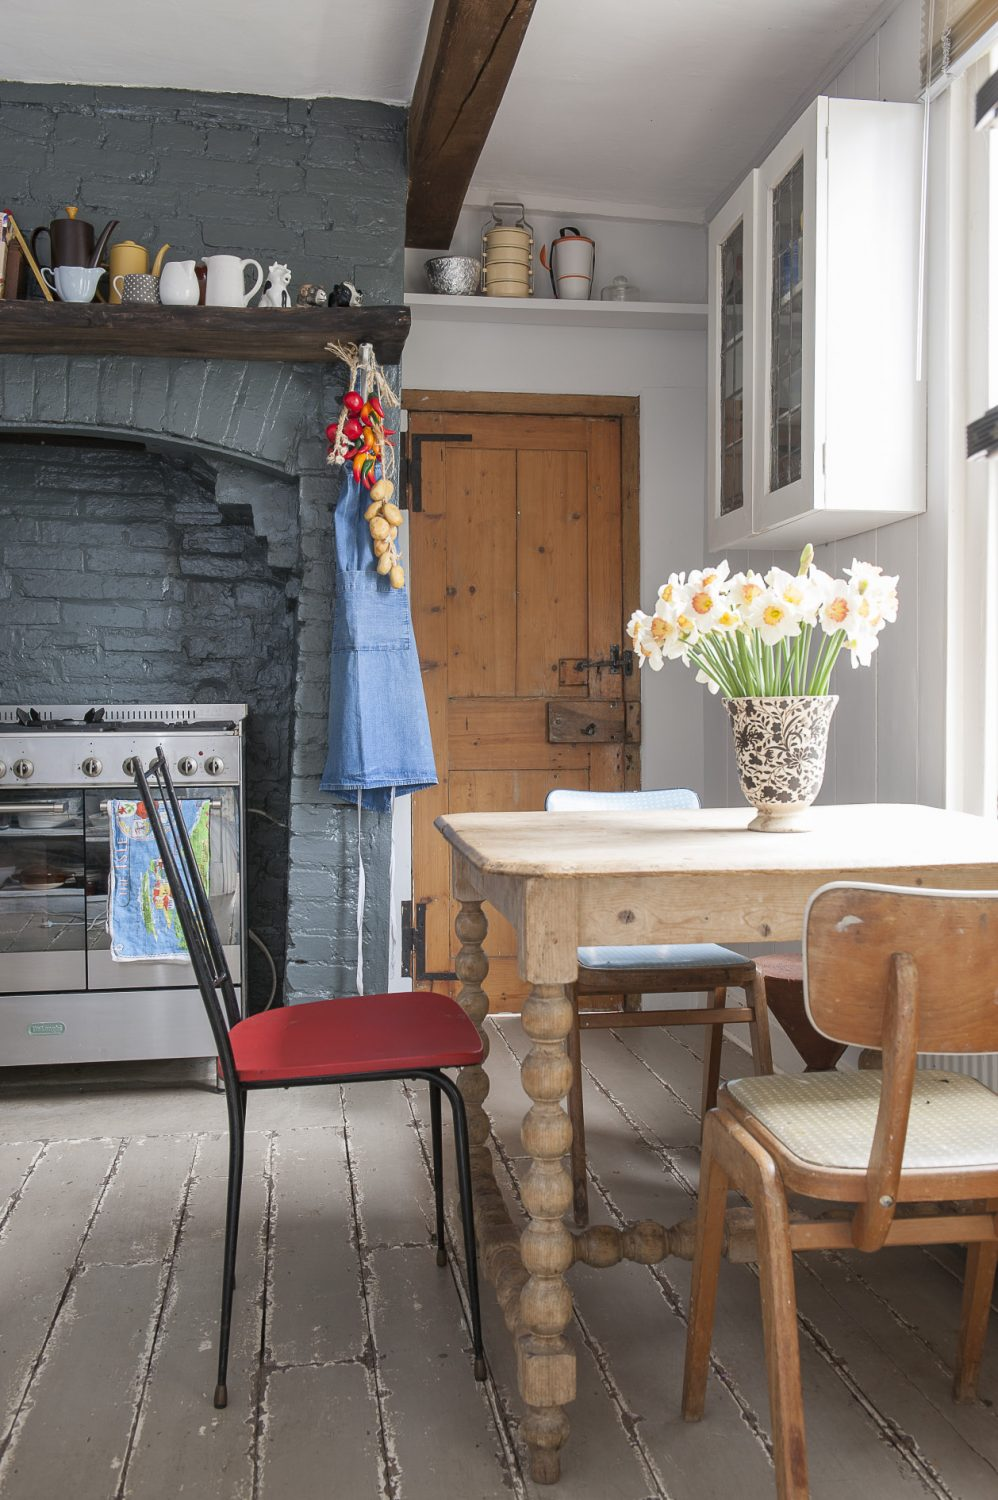 Lionel has plans to extend the kitchen space and make a feature of the fireplace which currently houses the cooker